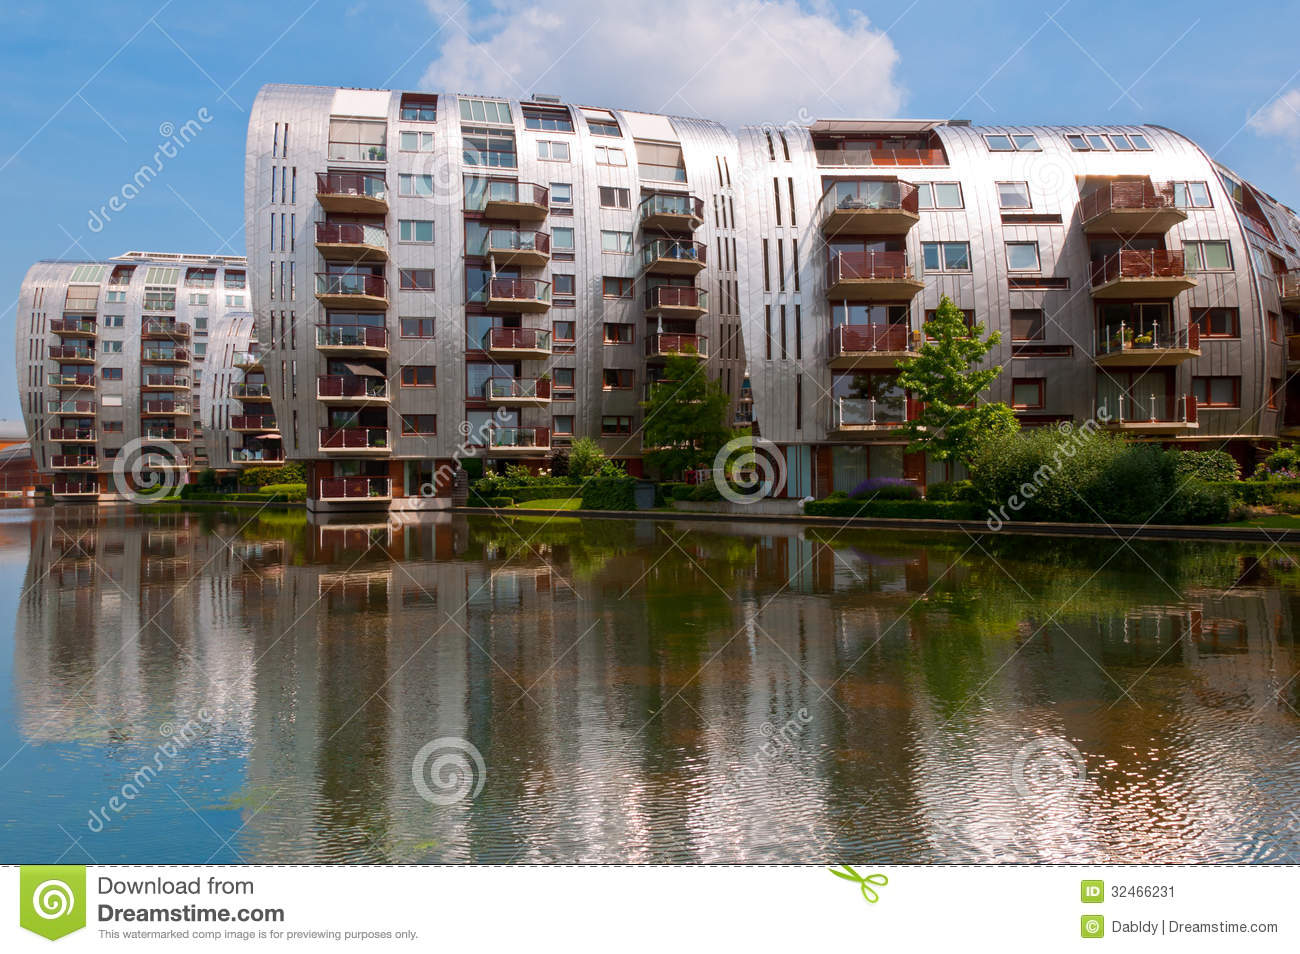 Stock Image Beautiful Modern Architecture Residential Apartment Buildings Newly Built Homes Nice Neighborhood Den Bosch  herlands Image32466231 on modern residential house design